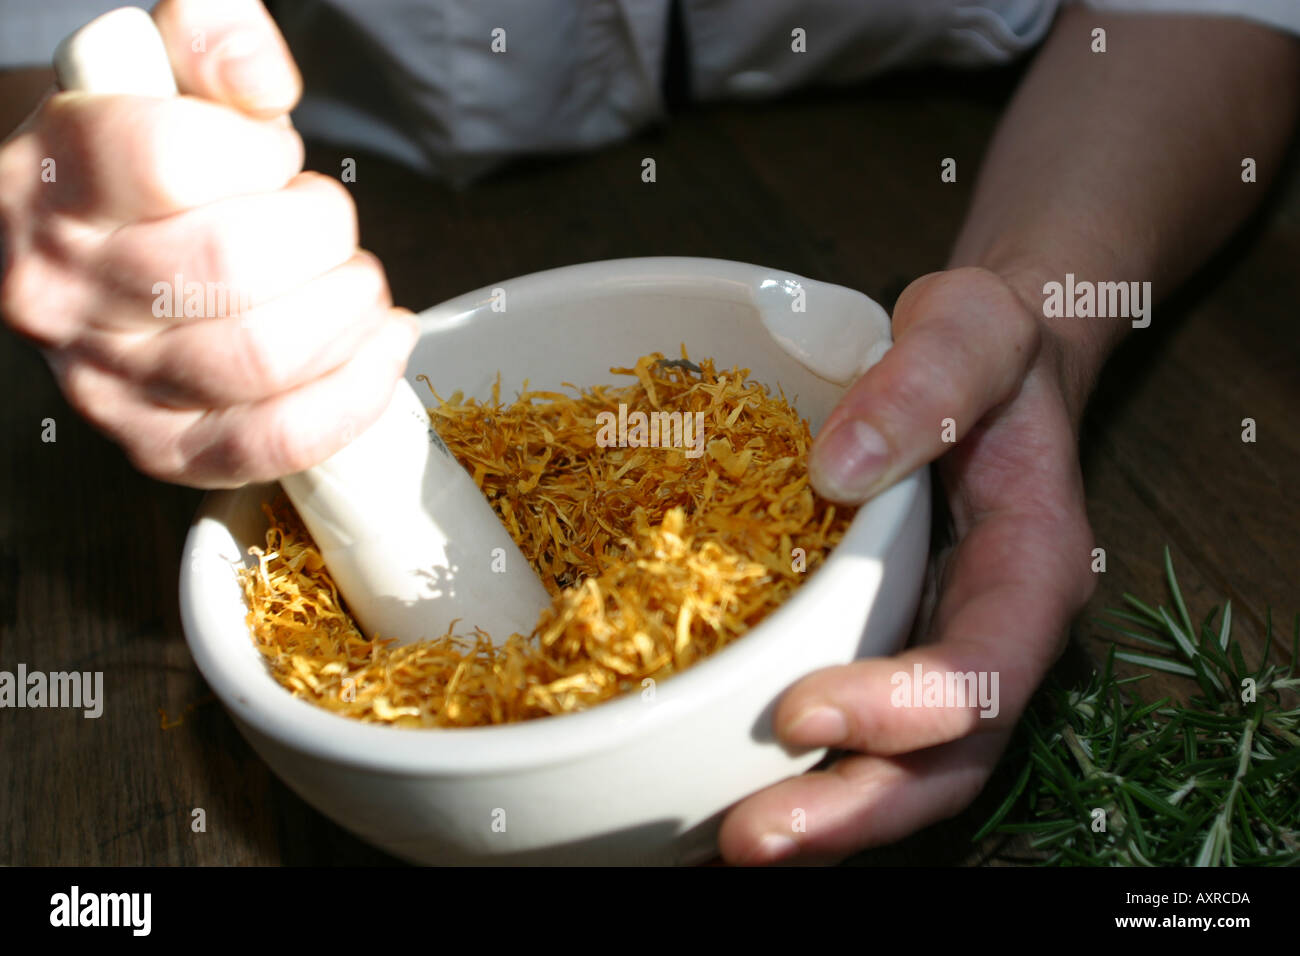 grinding ingredients for hand made soap in pestel and mortar - Stock Image